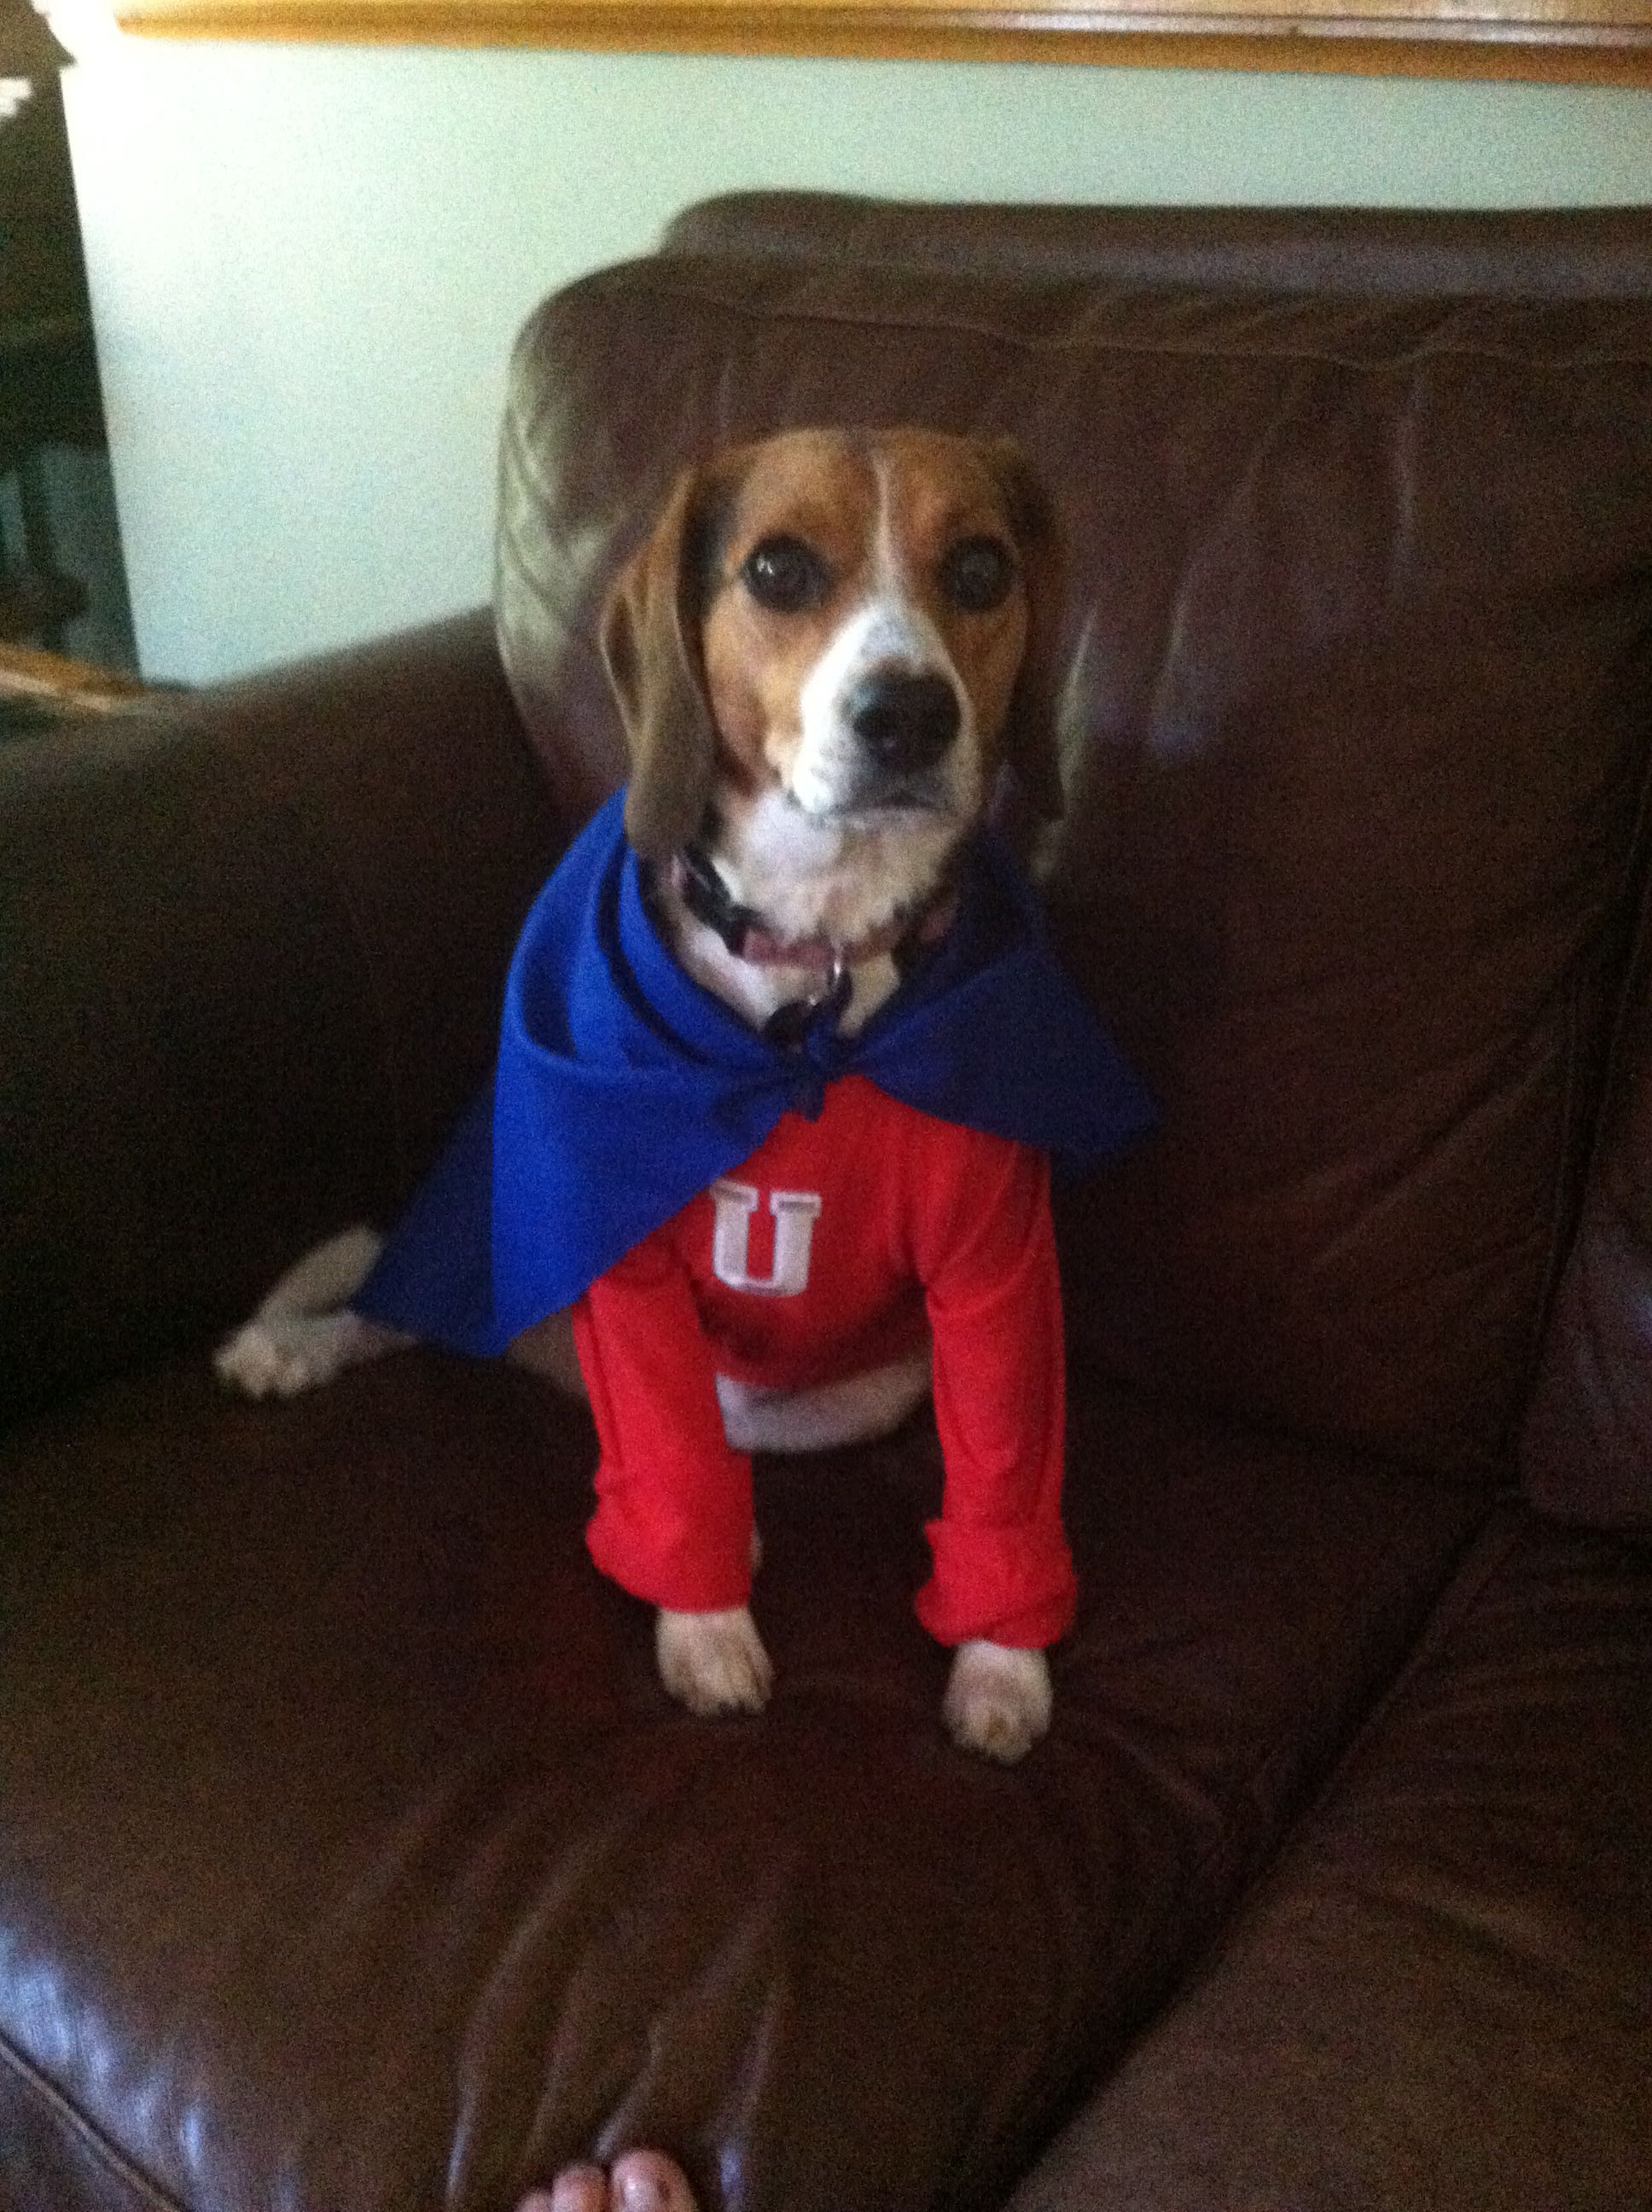 Homemade Underdog Costume Dog Costume Cute Animals Dogs